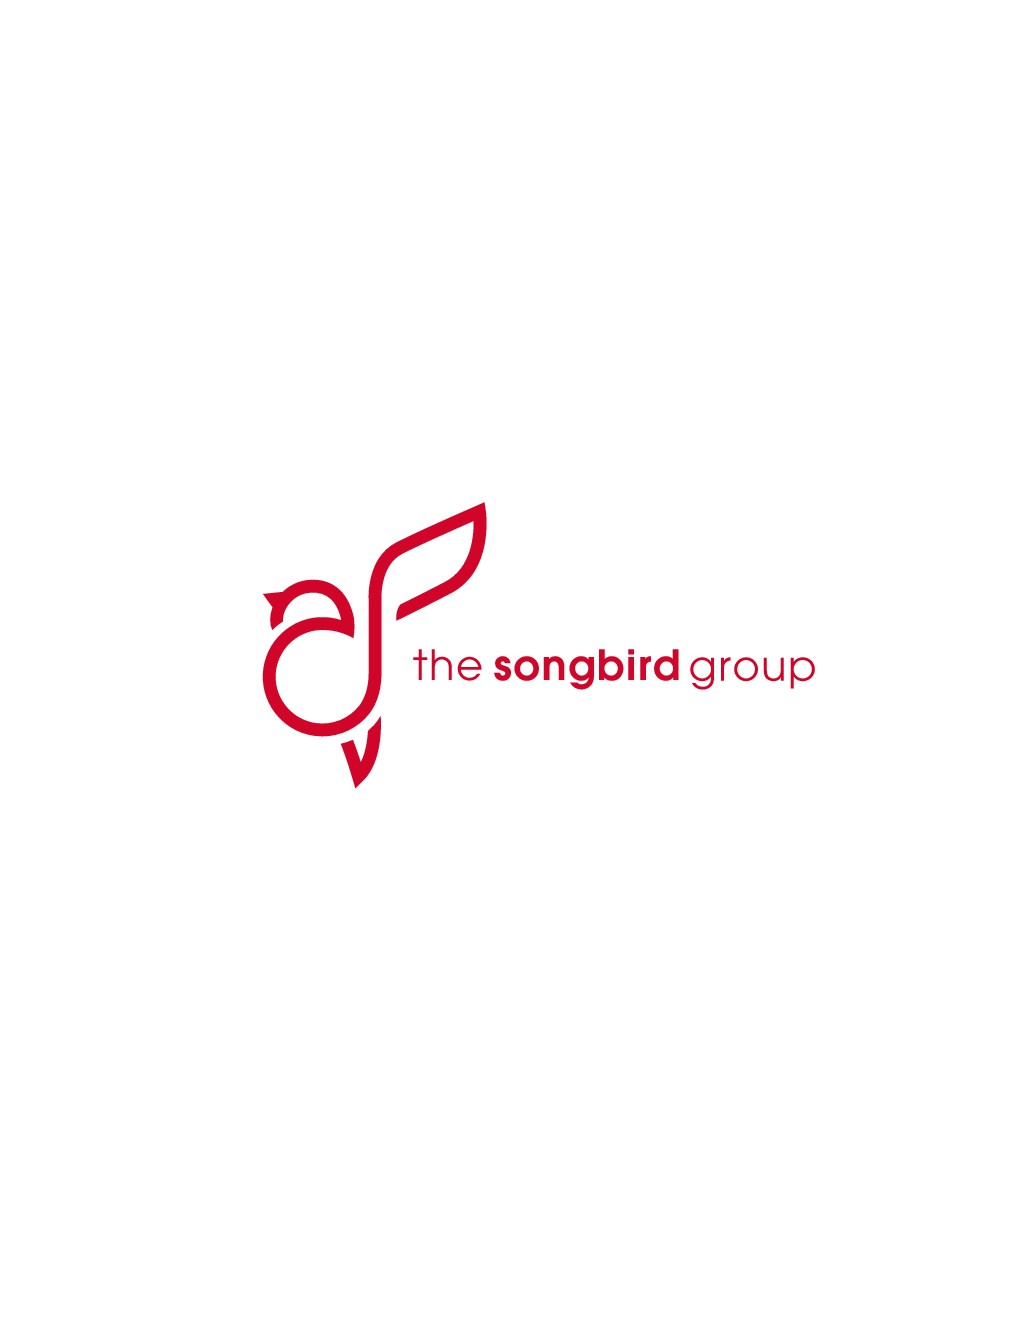 Design a modern logo that elicits songs of praise from The Songbird Group.